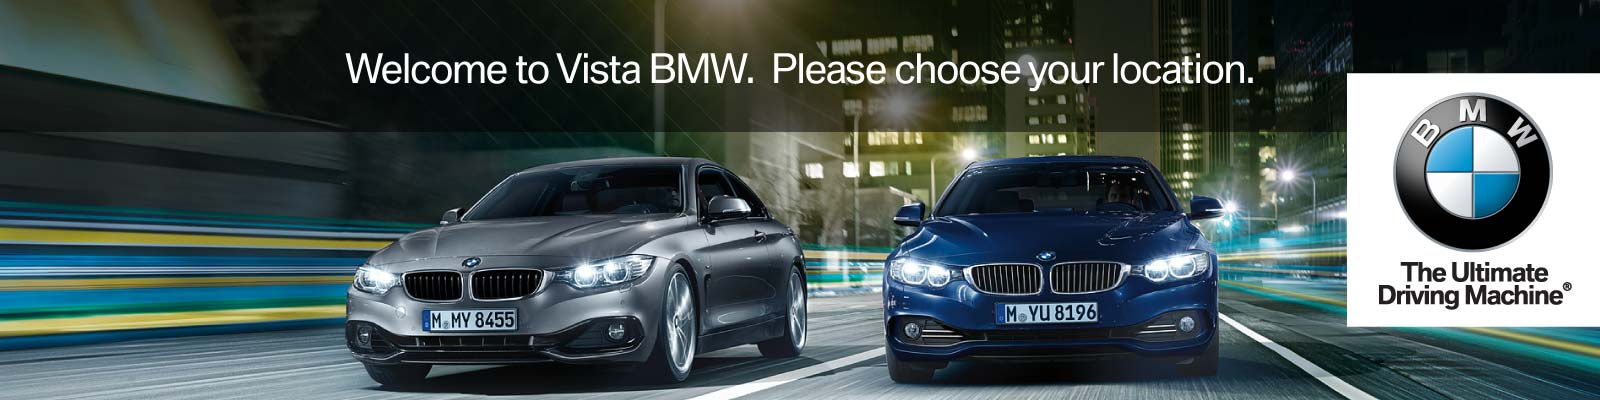 Choose Your Vista BMW Location